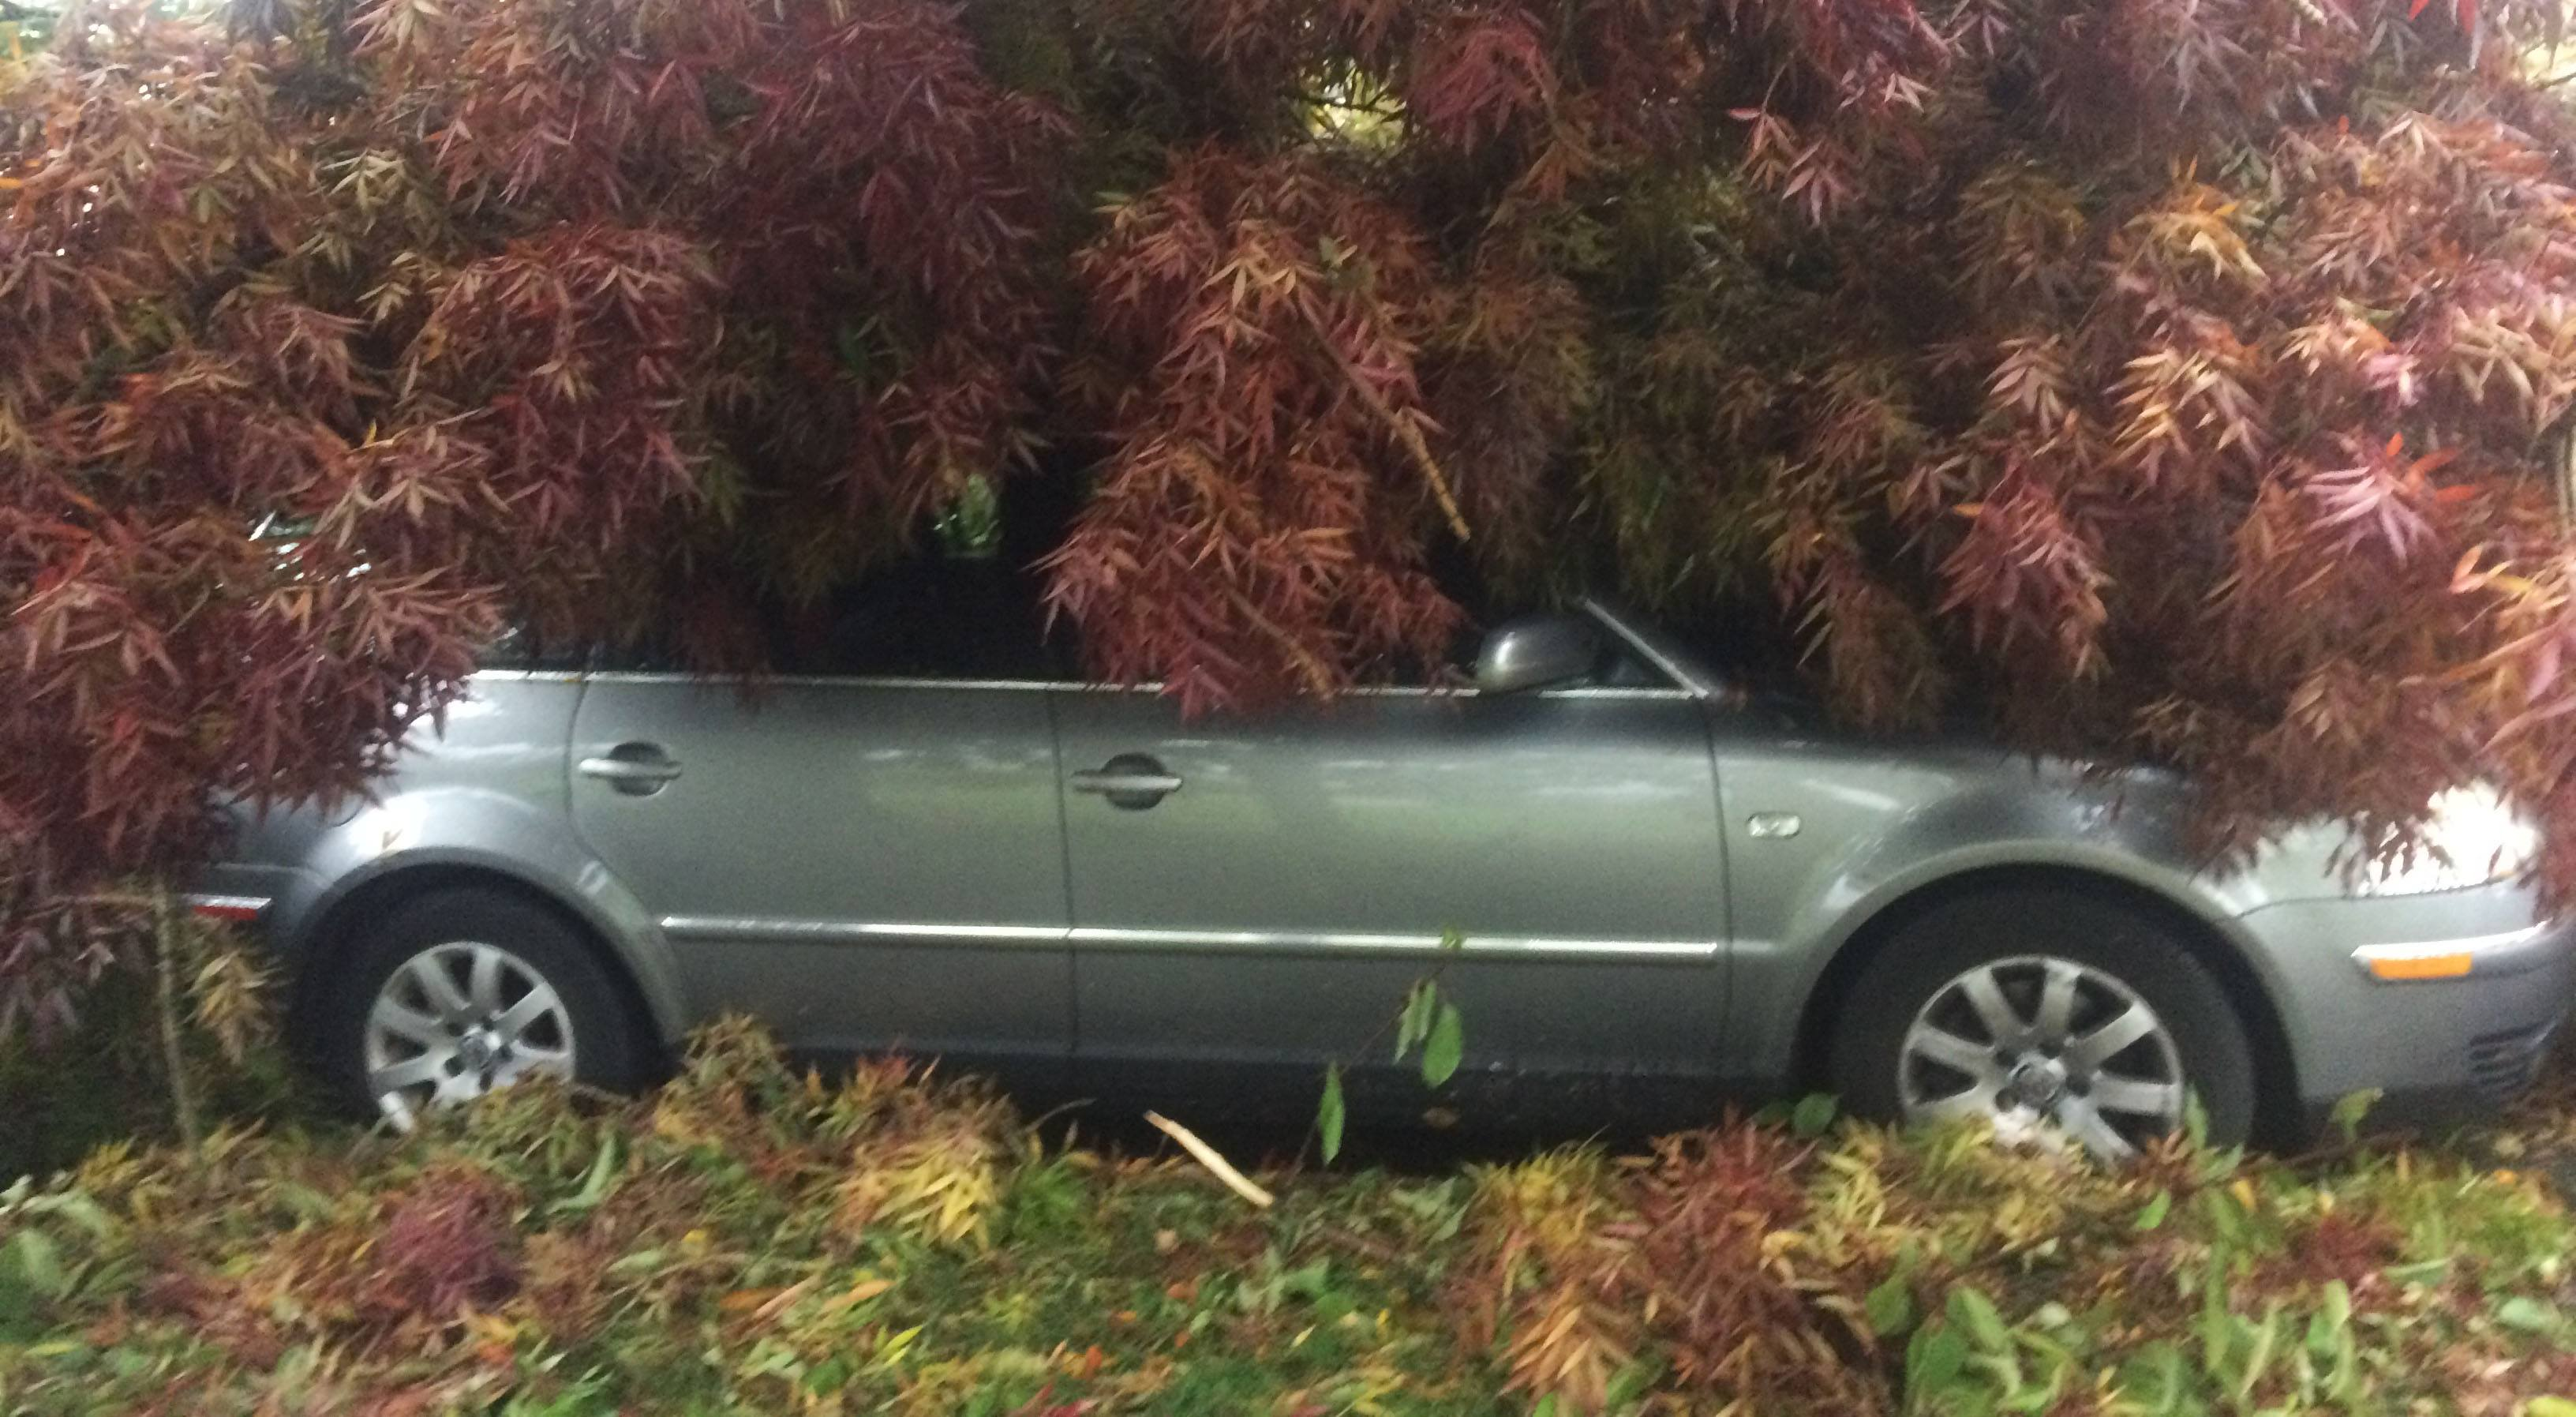 Kath wills car was engulfed by a fallen tree during the storm in vancouver on friday kath will feature